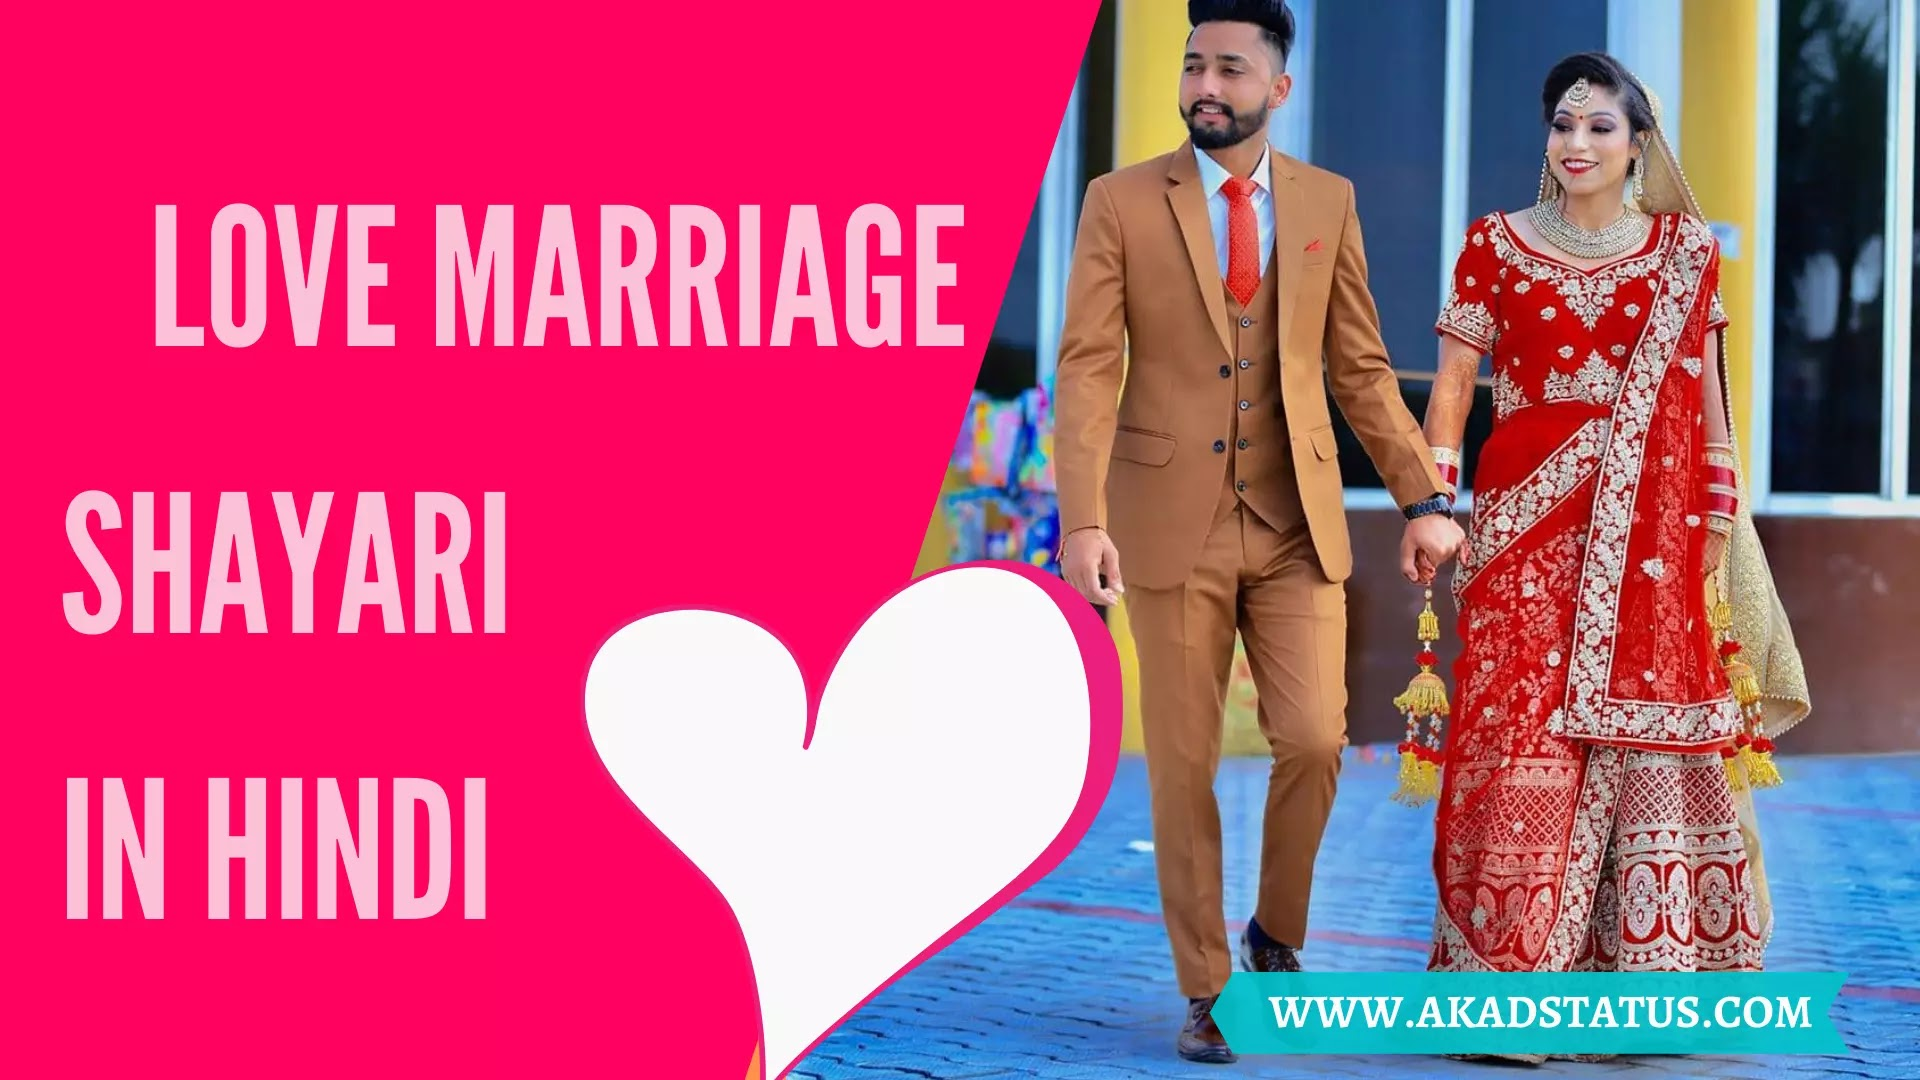 Love Marriage Shayari in Hindi | Love Marriage Quotes in Hindi, Love Marriage Shayari, Bride Status in Hindi, Marriage Attitude Status in Hindi, Love Attitude Status in Hindi, Marriage status in english, Shadi Status in english, Marriage Wishes in Hindi, Shadi Attitude Status